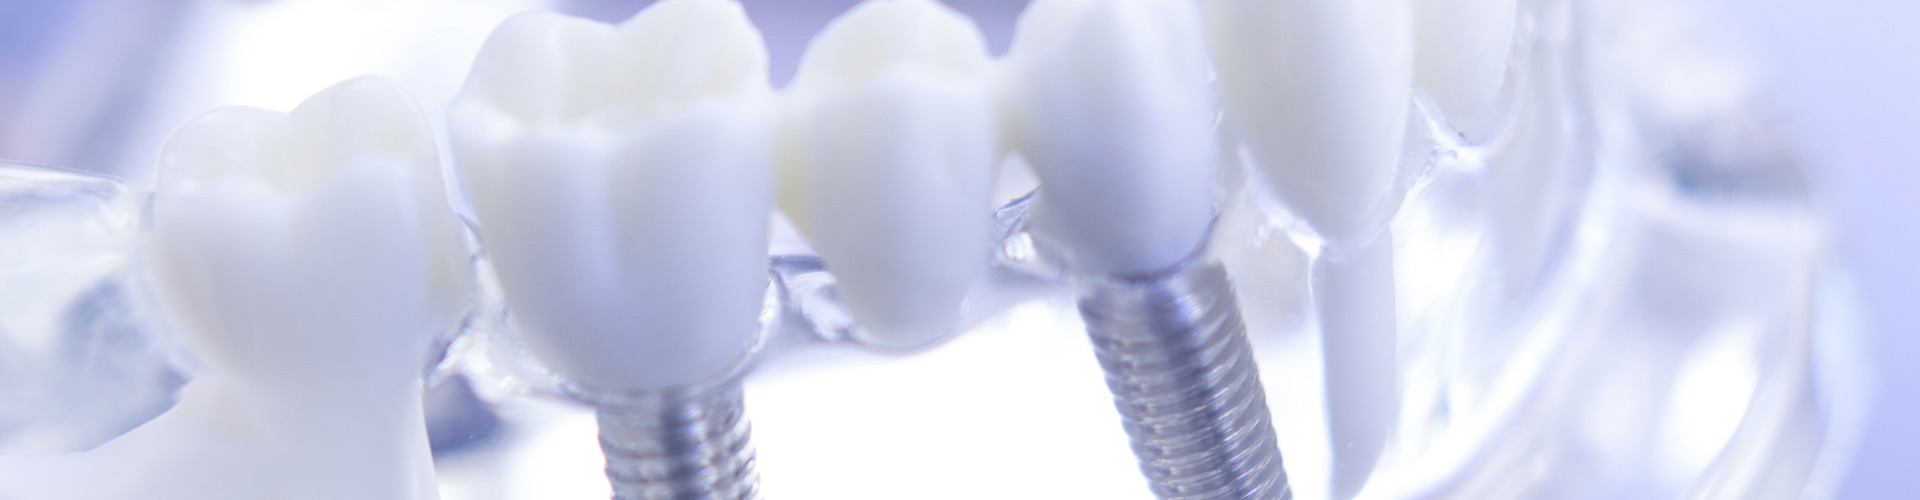 Dental Implants Elk Grove, CA